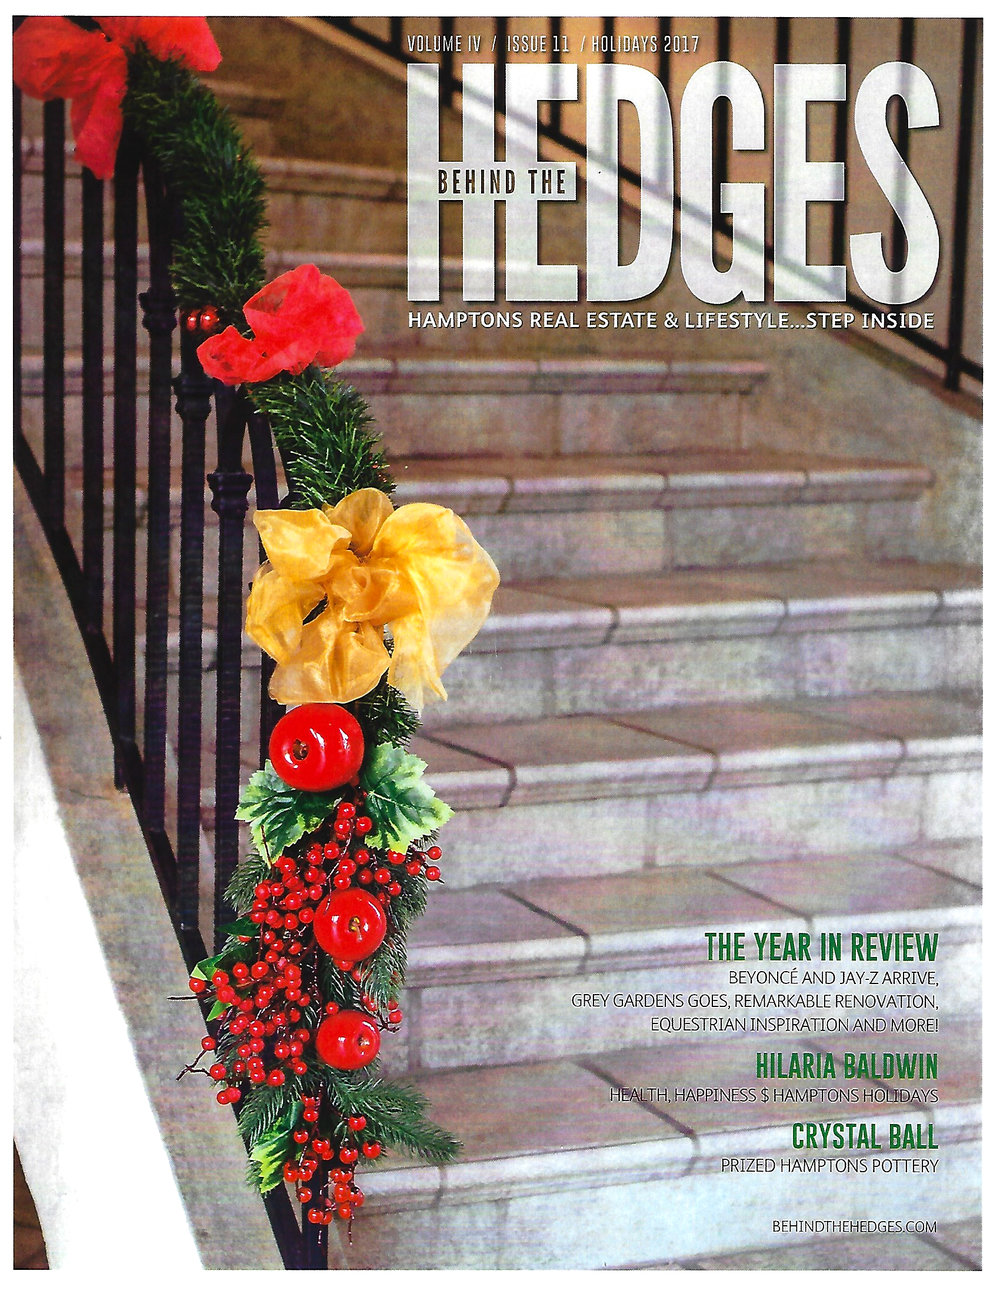 Behind the Hedges - Cover_Dec 2017.jpg